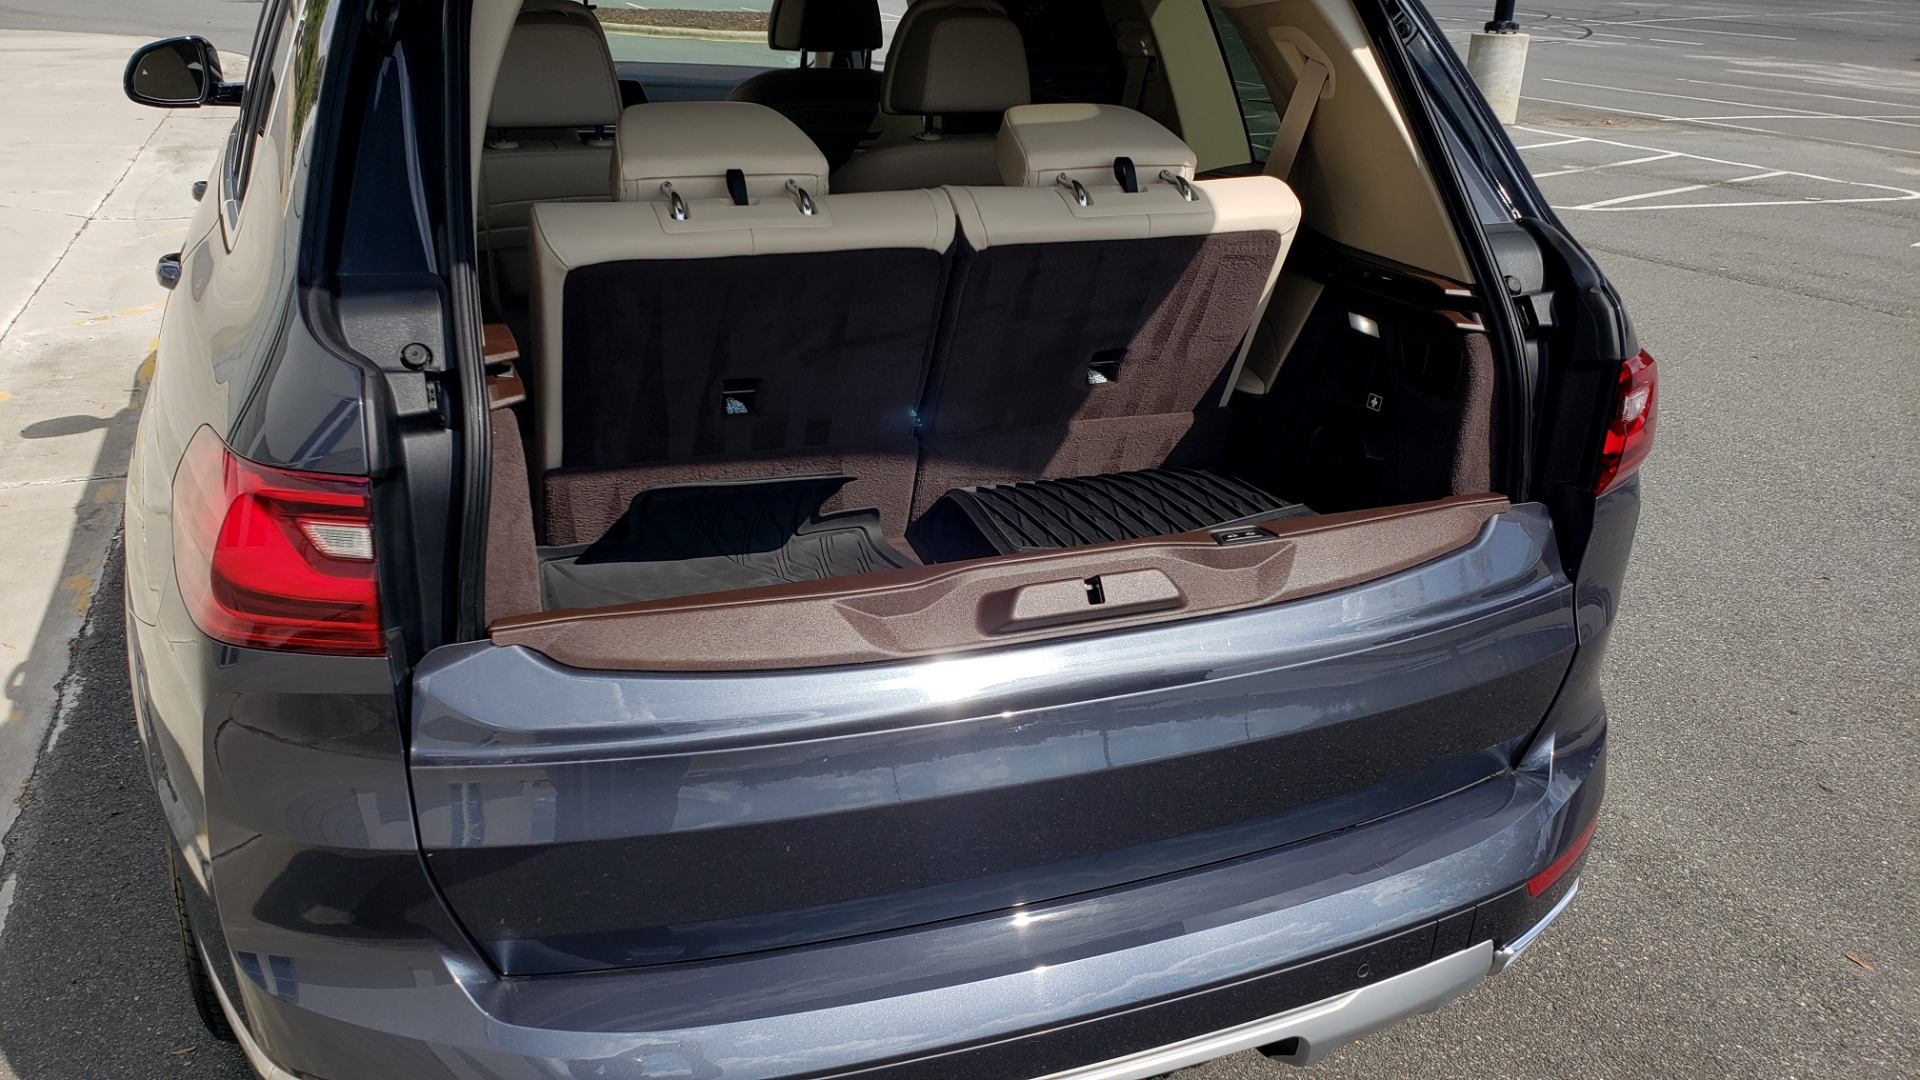 Used 2019 BMW X7 XDRIVE40I PREMIUM / LUXURY / COLD WEATHER / PARK ASST / PANORAMIC SKY / TOW for sale $75,999 at Formula Imports in Charlotte NC 28227 17